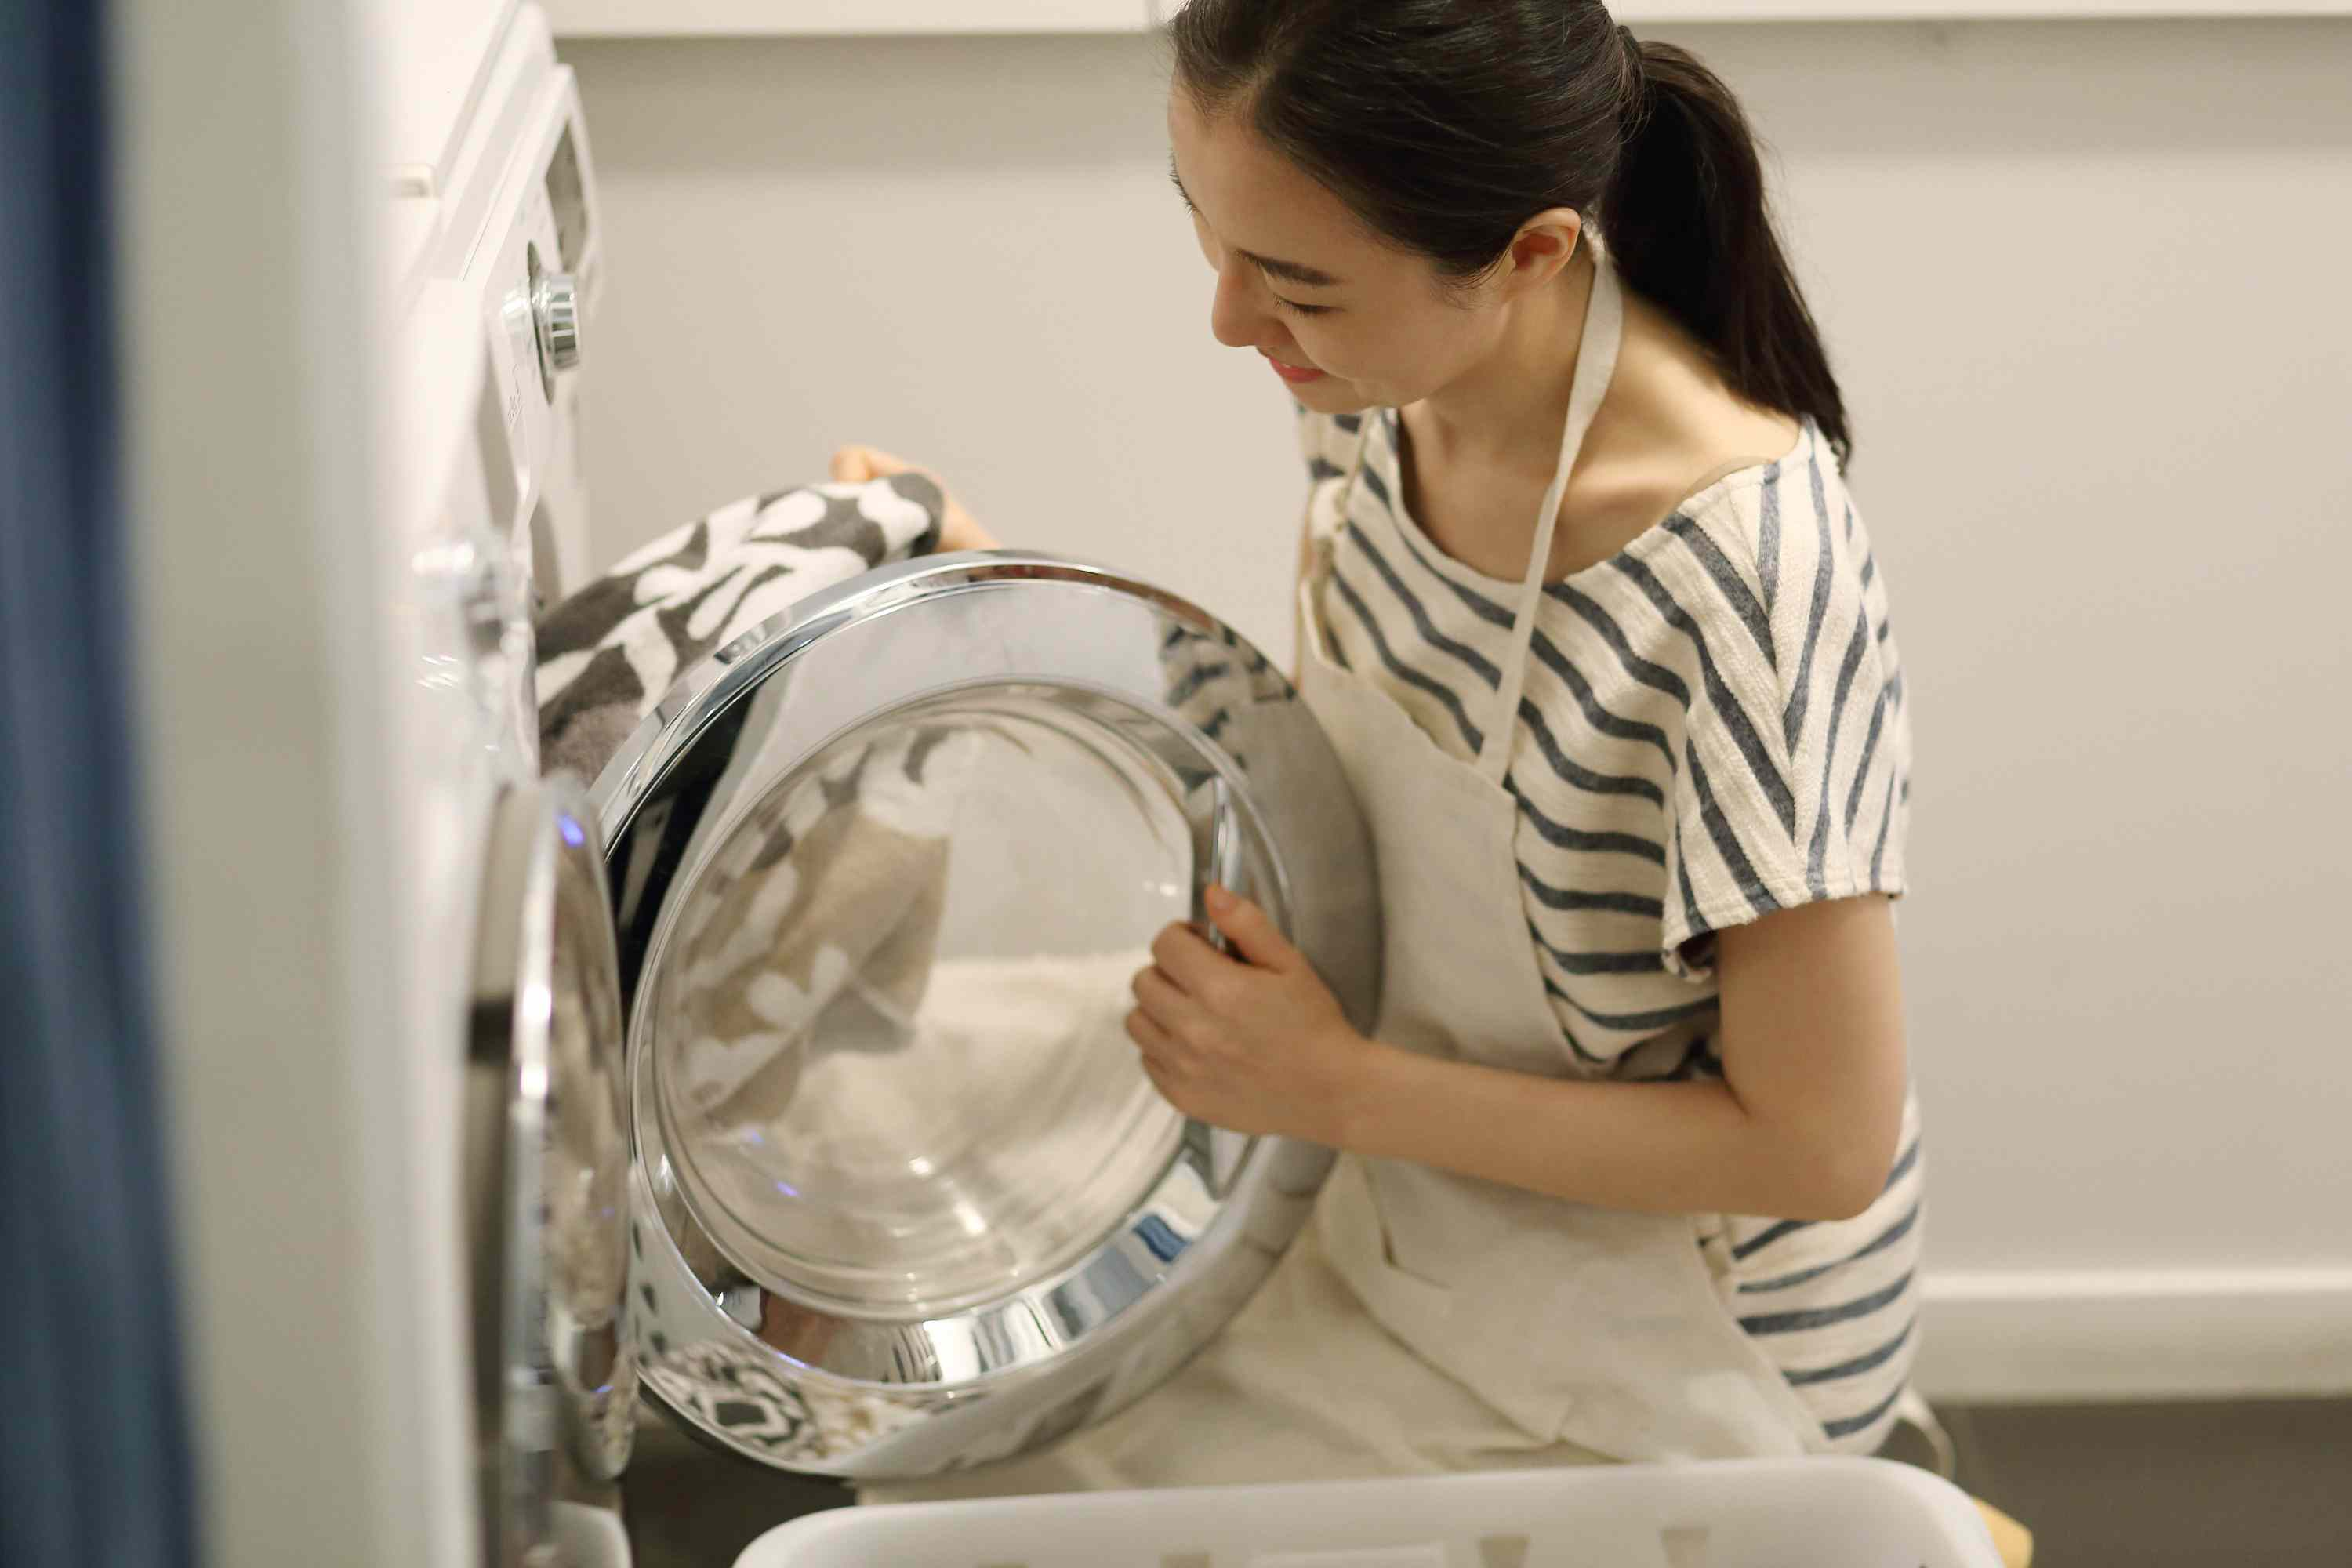 Woman loading clothes into a washer.